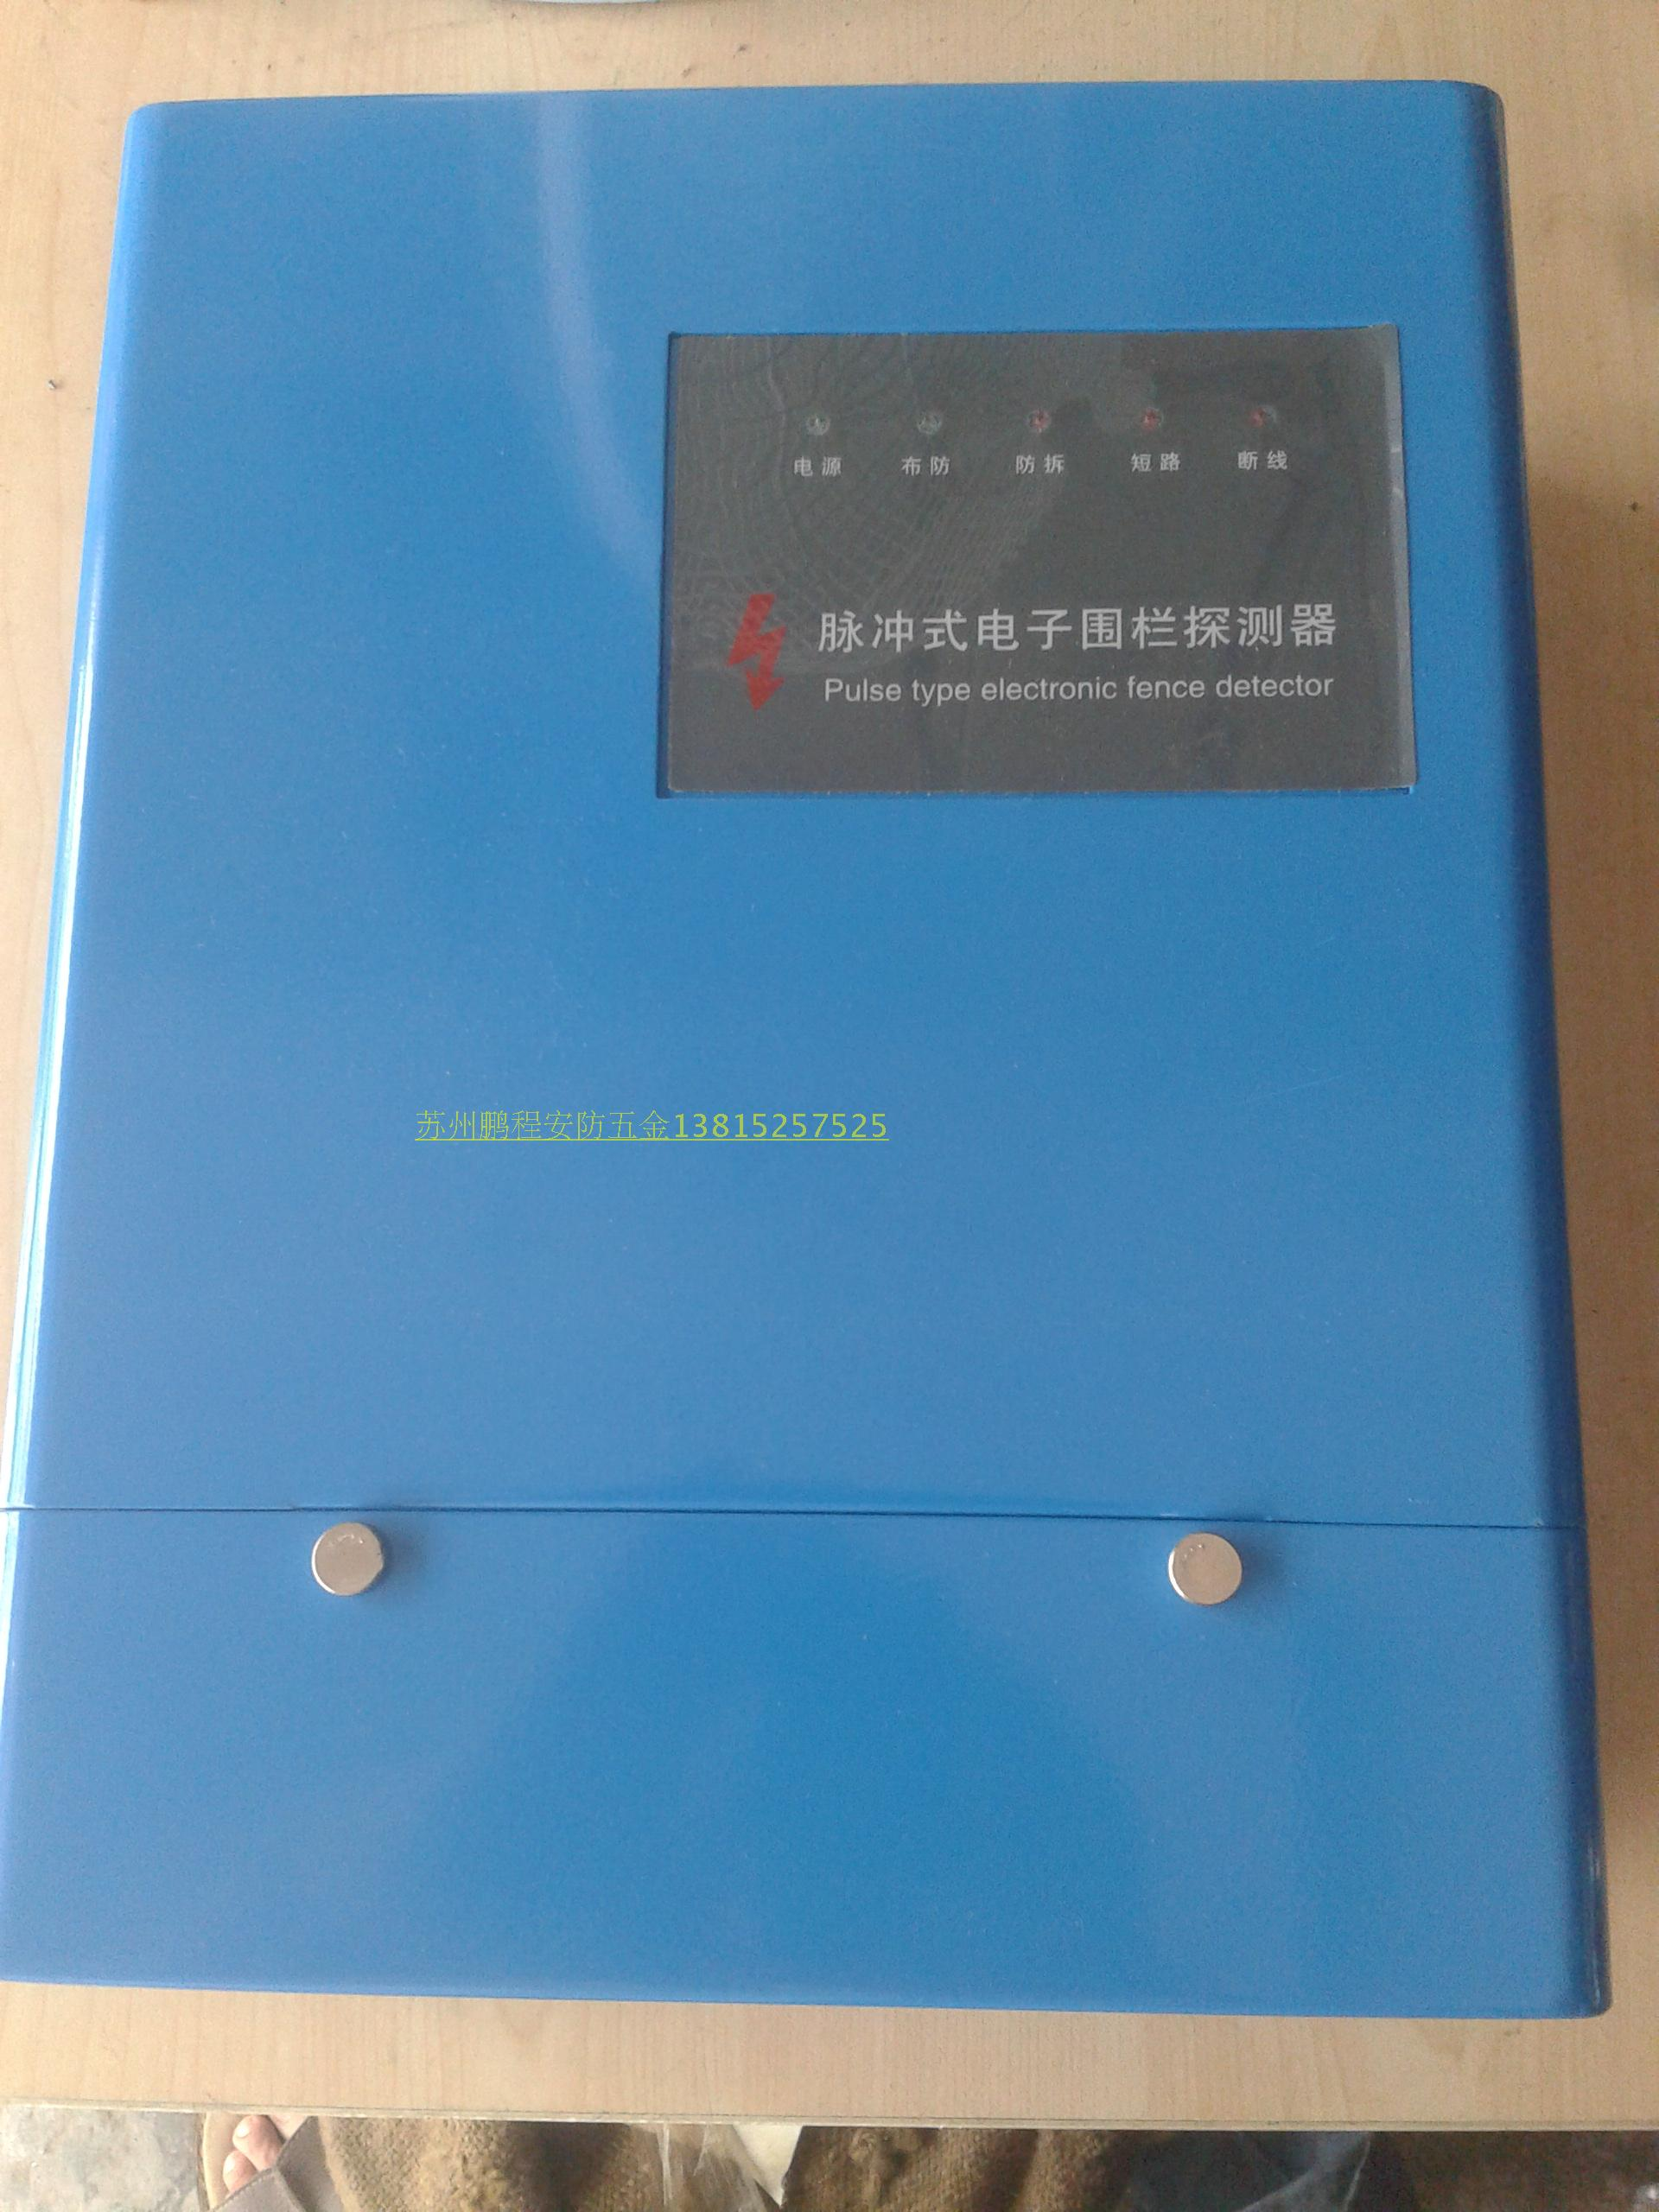 Jiangsu high-voltage pulse electronic fence host Suzhou single-zone detector (another double-zone)